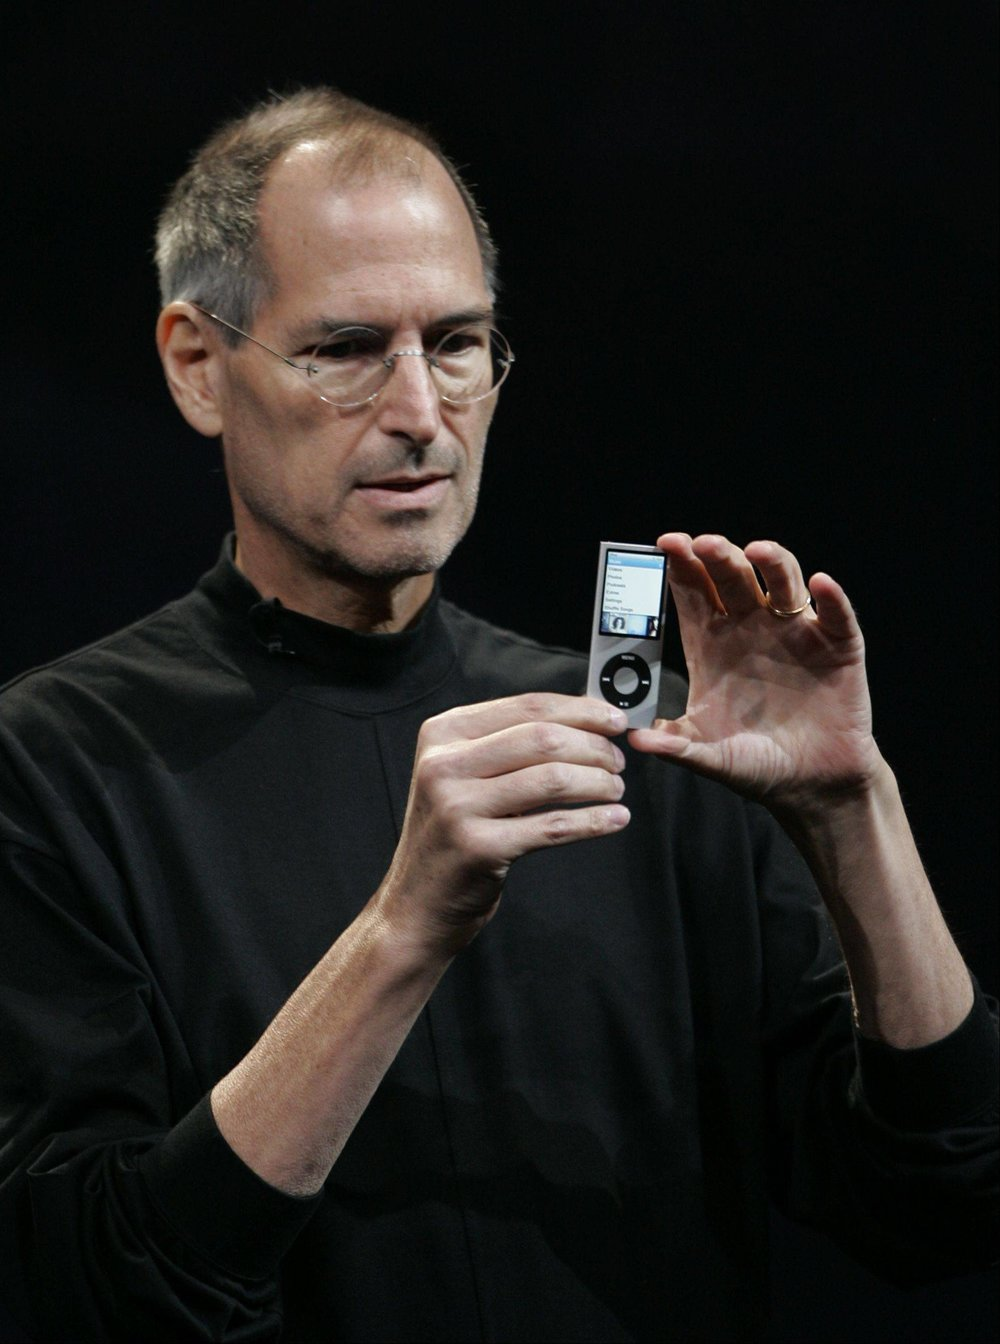 Steve Jobs introduces iPod, Sept 9, 2008. Photo source:  The Red List .